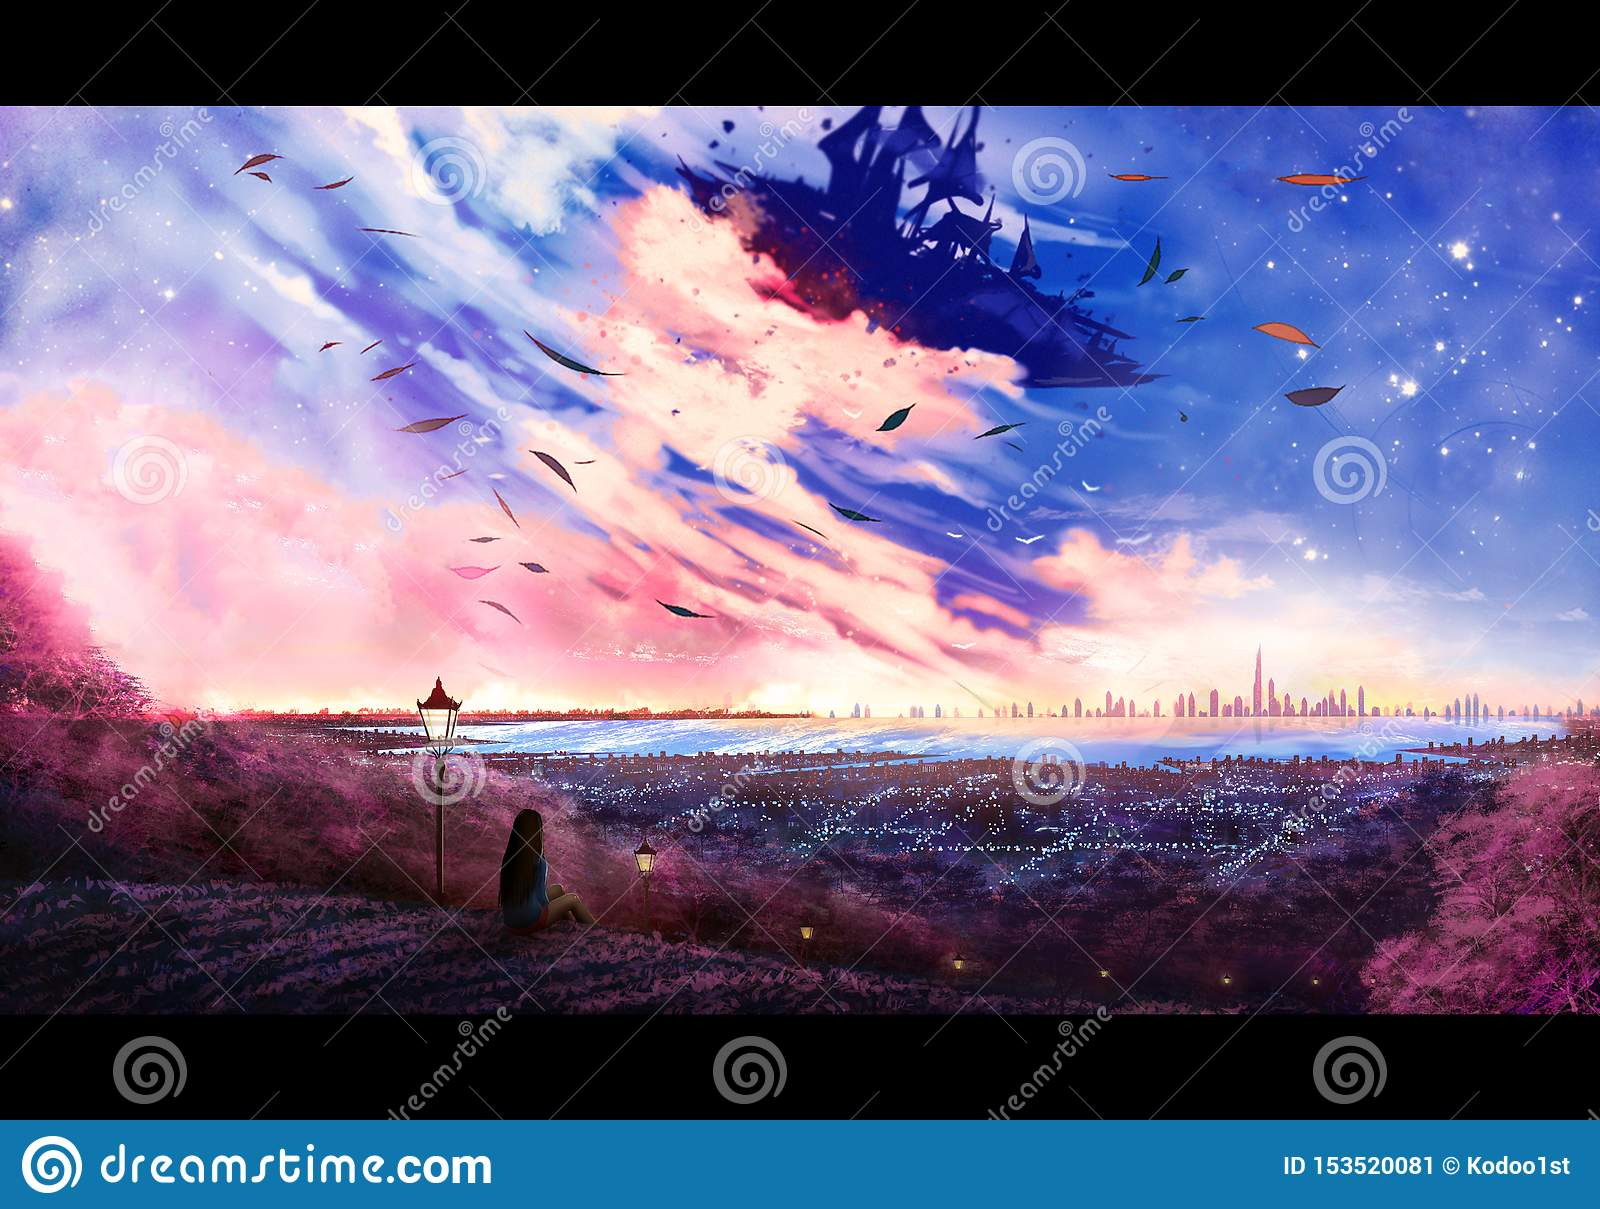 Abstract Artistic Digital Painting Illustration Of A Woman On A High Hill Looking At A Beautiful Sky